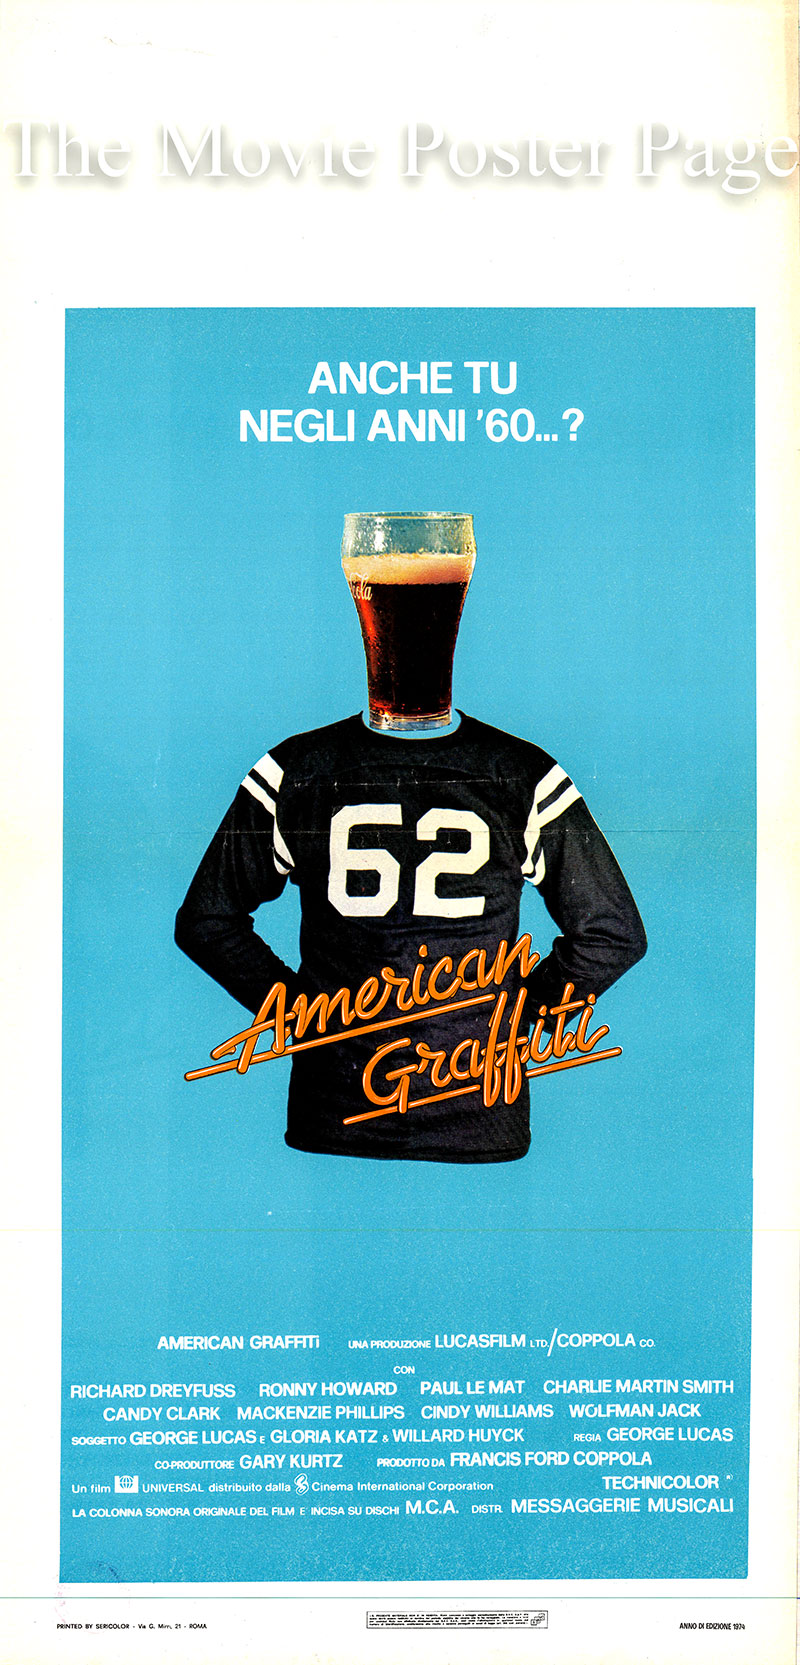 Pictured is an Italian locandina promotional poster for the 1973 George Lucas film American Graffiti written by George Lucas, Gloria Katz and Willard Huyck and starring Richard Dreyfuss as Curt Henderson.